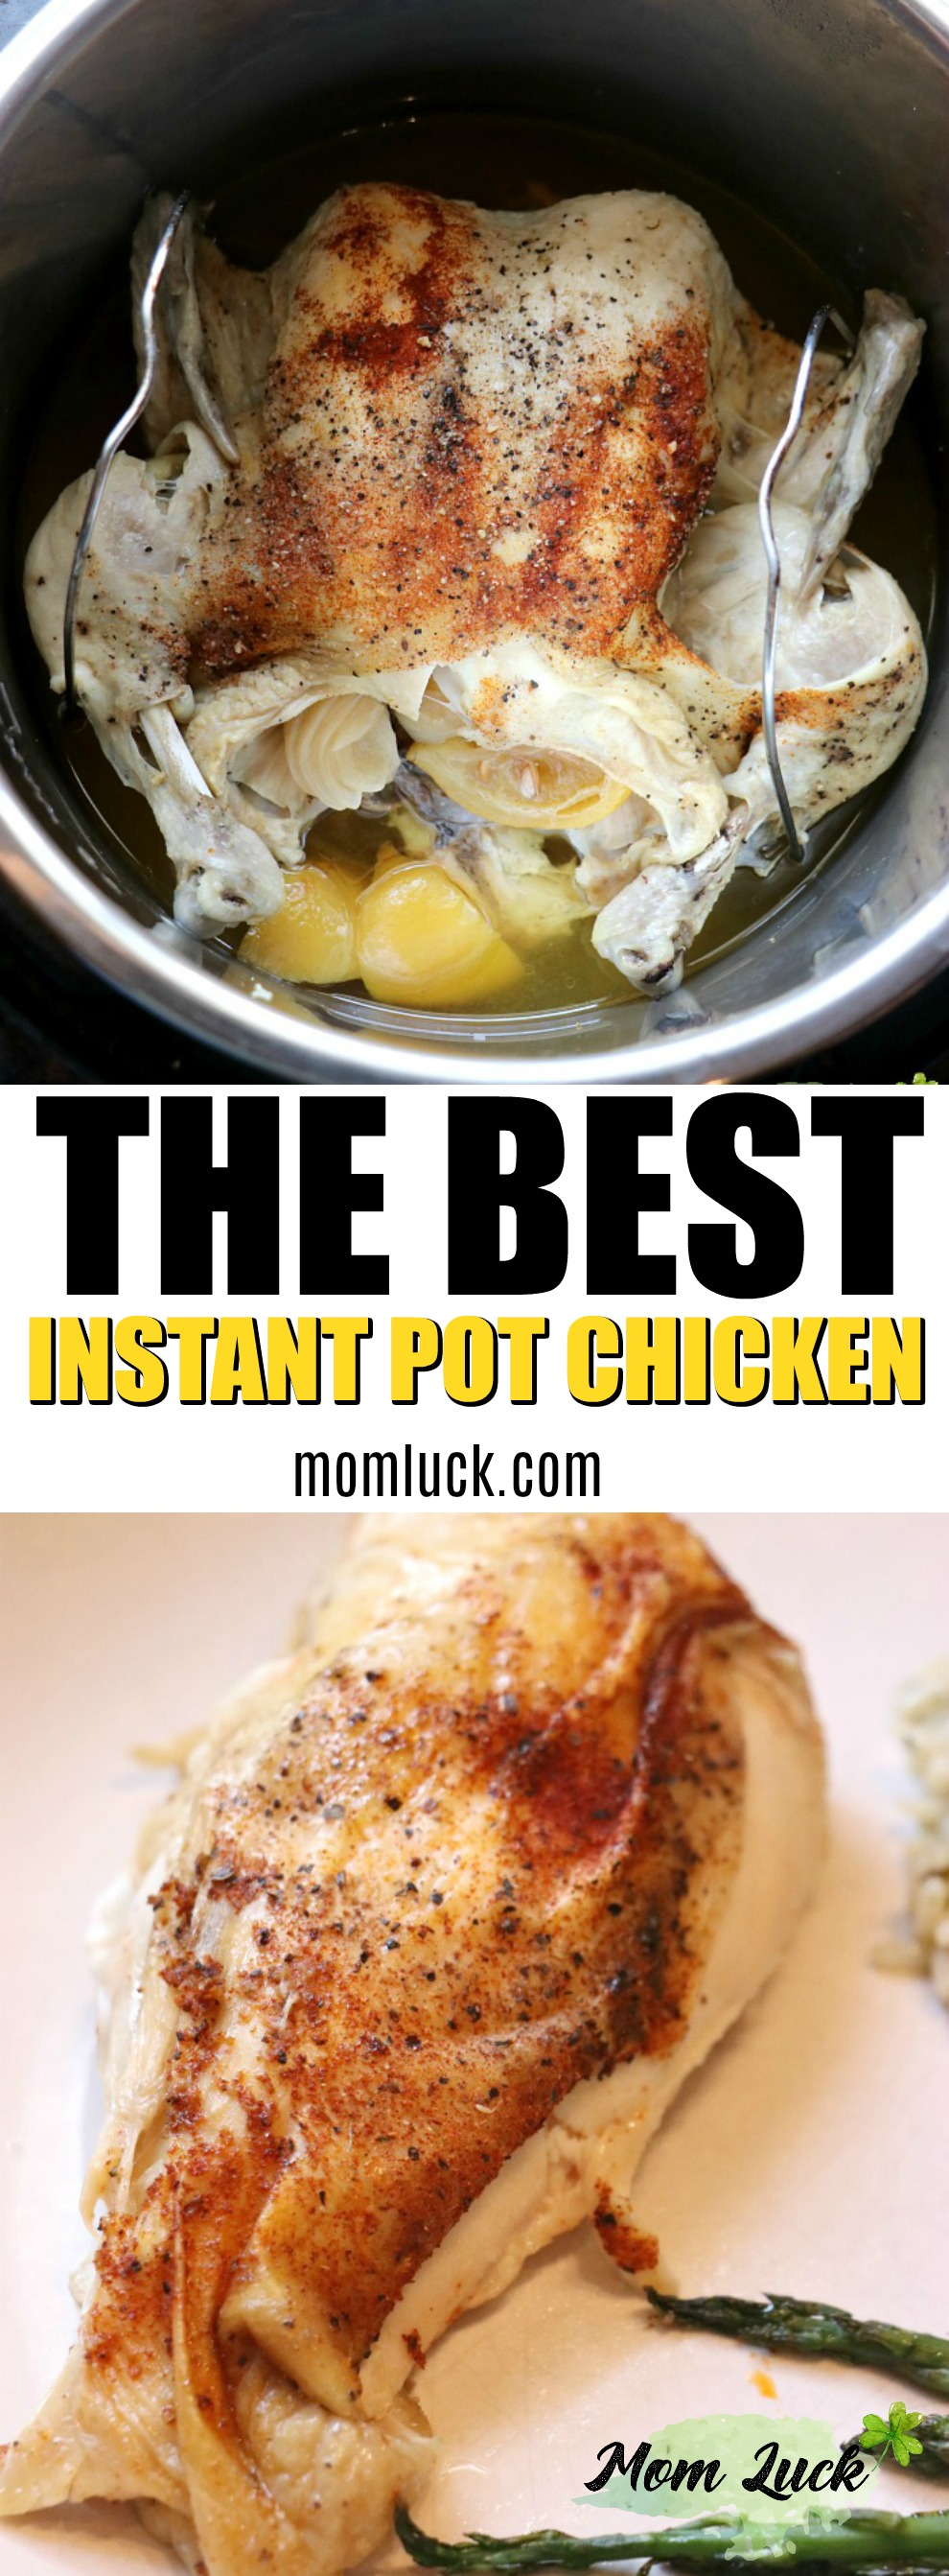 Pinterest image for whole instant pot chicken